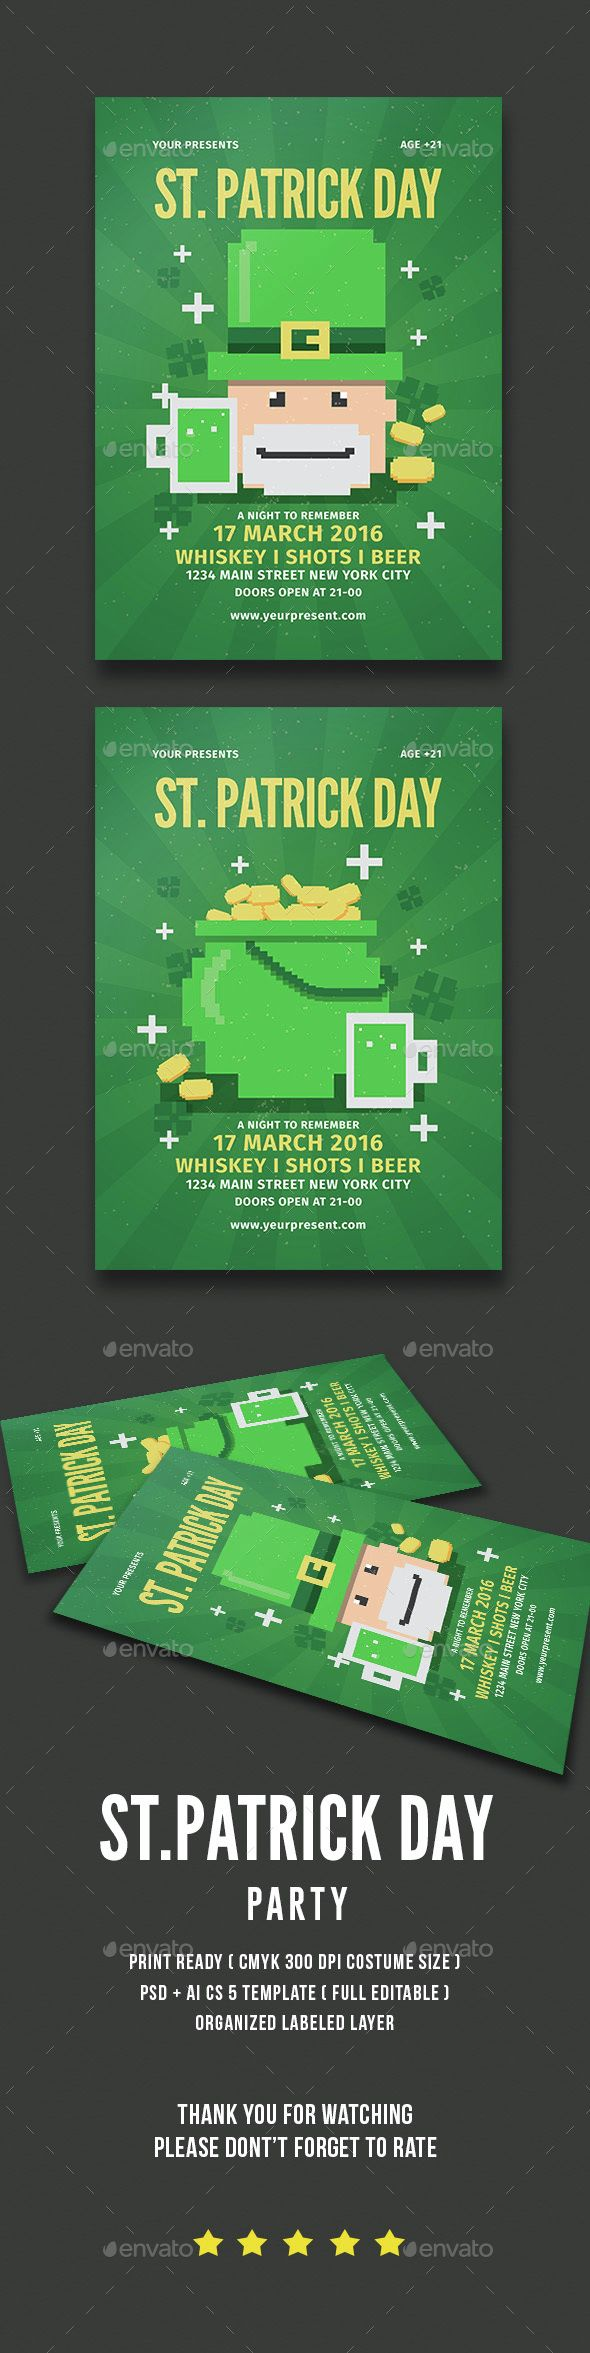 StPatrick Day Party – Green Flyer Template